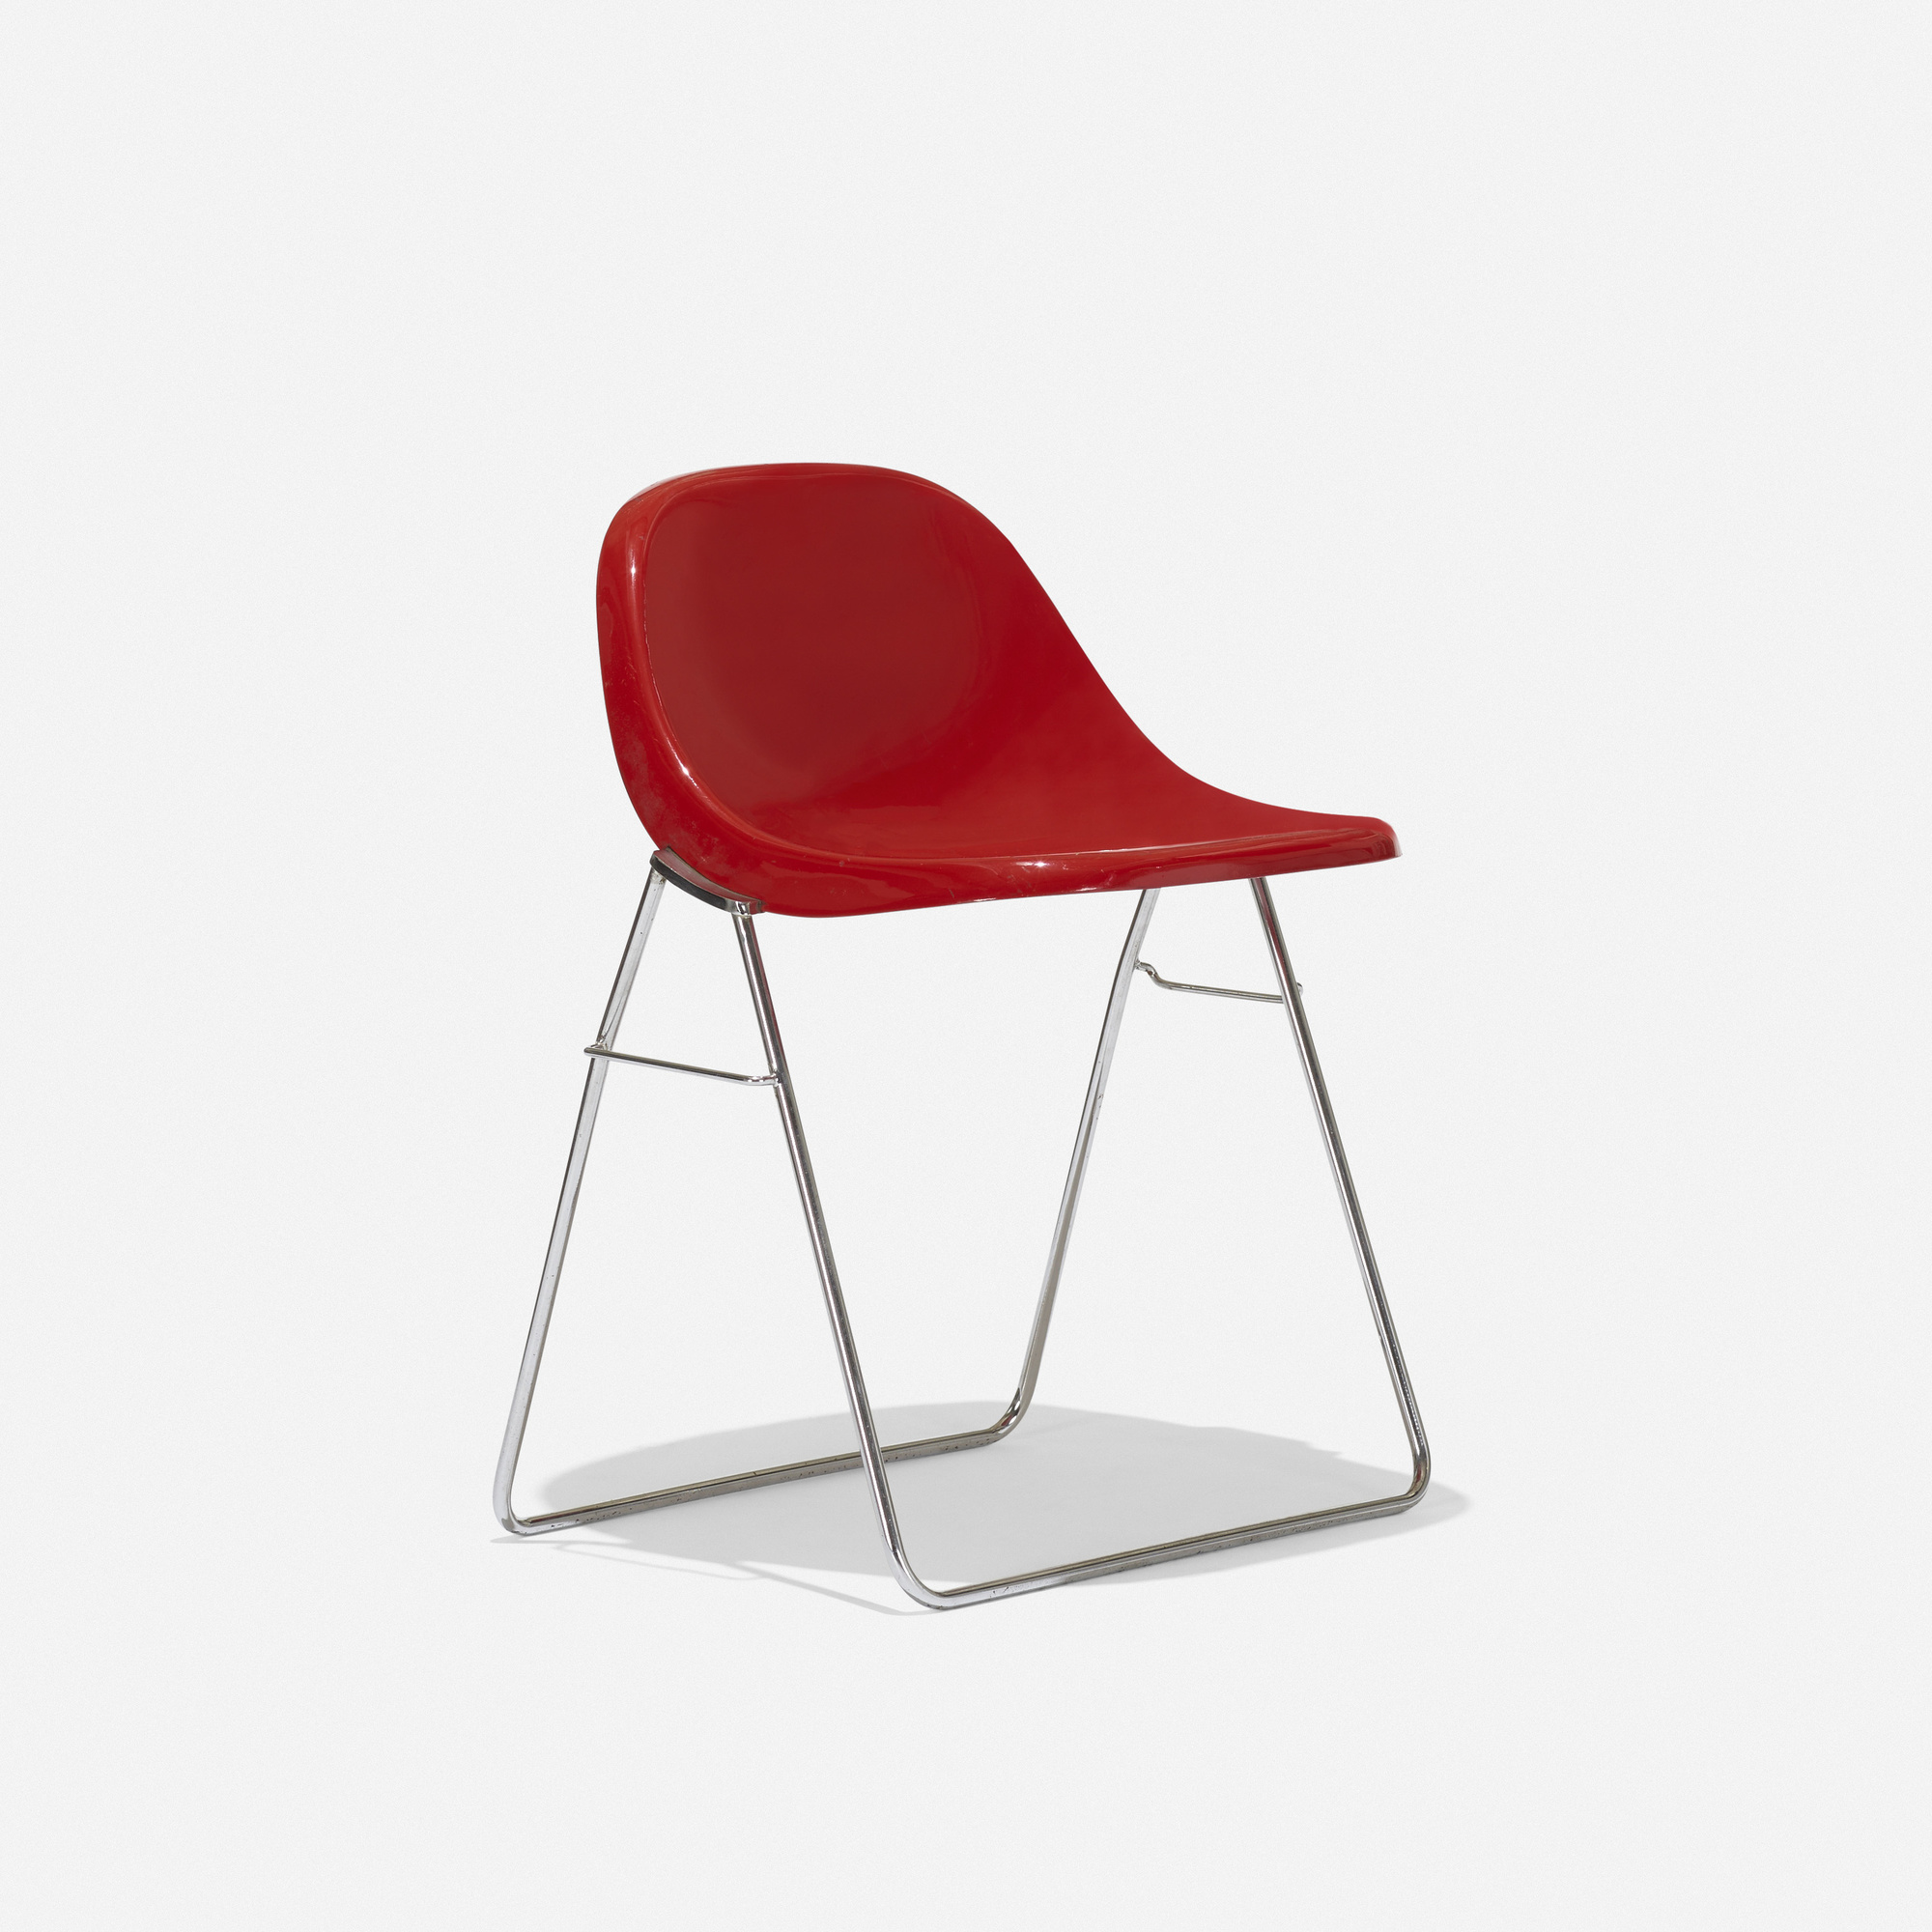 396: Marco Zanuso / Minisit chair (1 of 3)